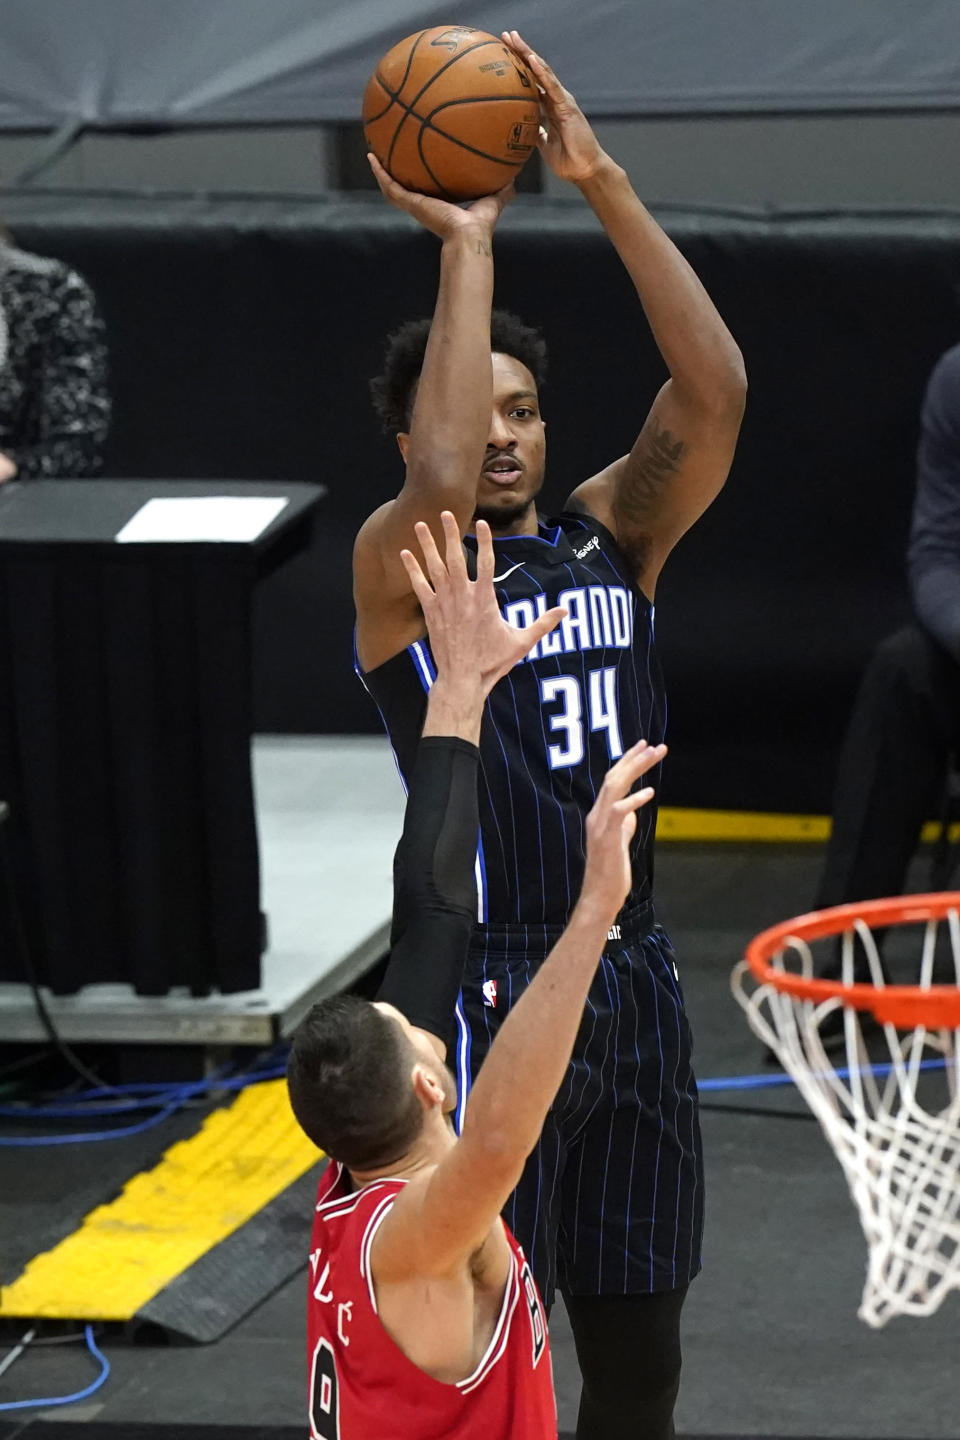 Orlando Magic center Wendell Carter Jr., top, shoots against Chicago Bulls center Nikola Vucevic during the first half of an NBA basketball game in Chicago, Wednesday, April 14, 2021. (AP Photo/Nam Y. Huh)